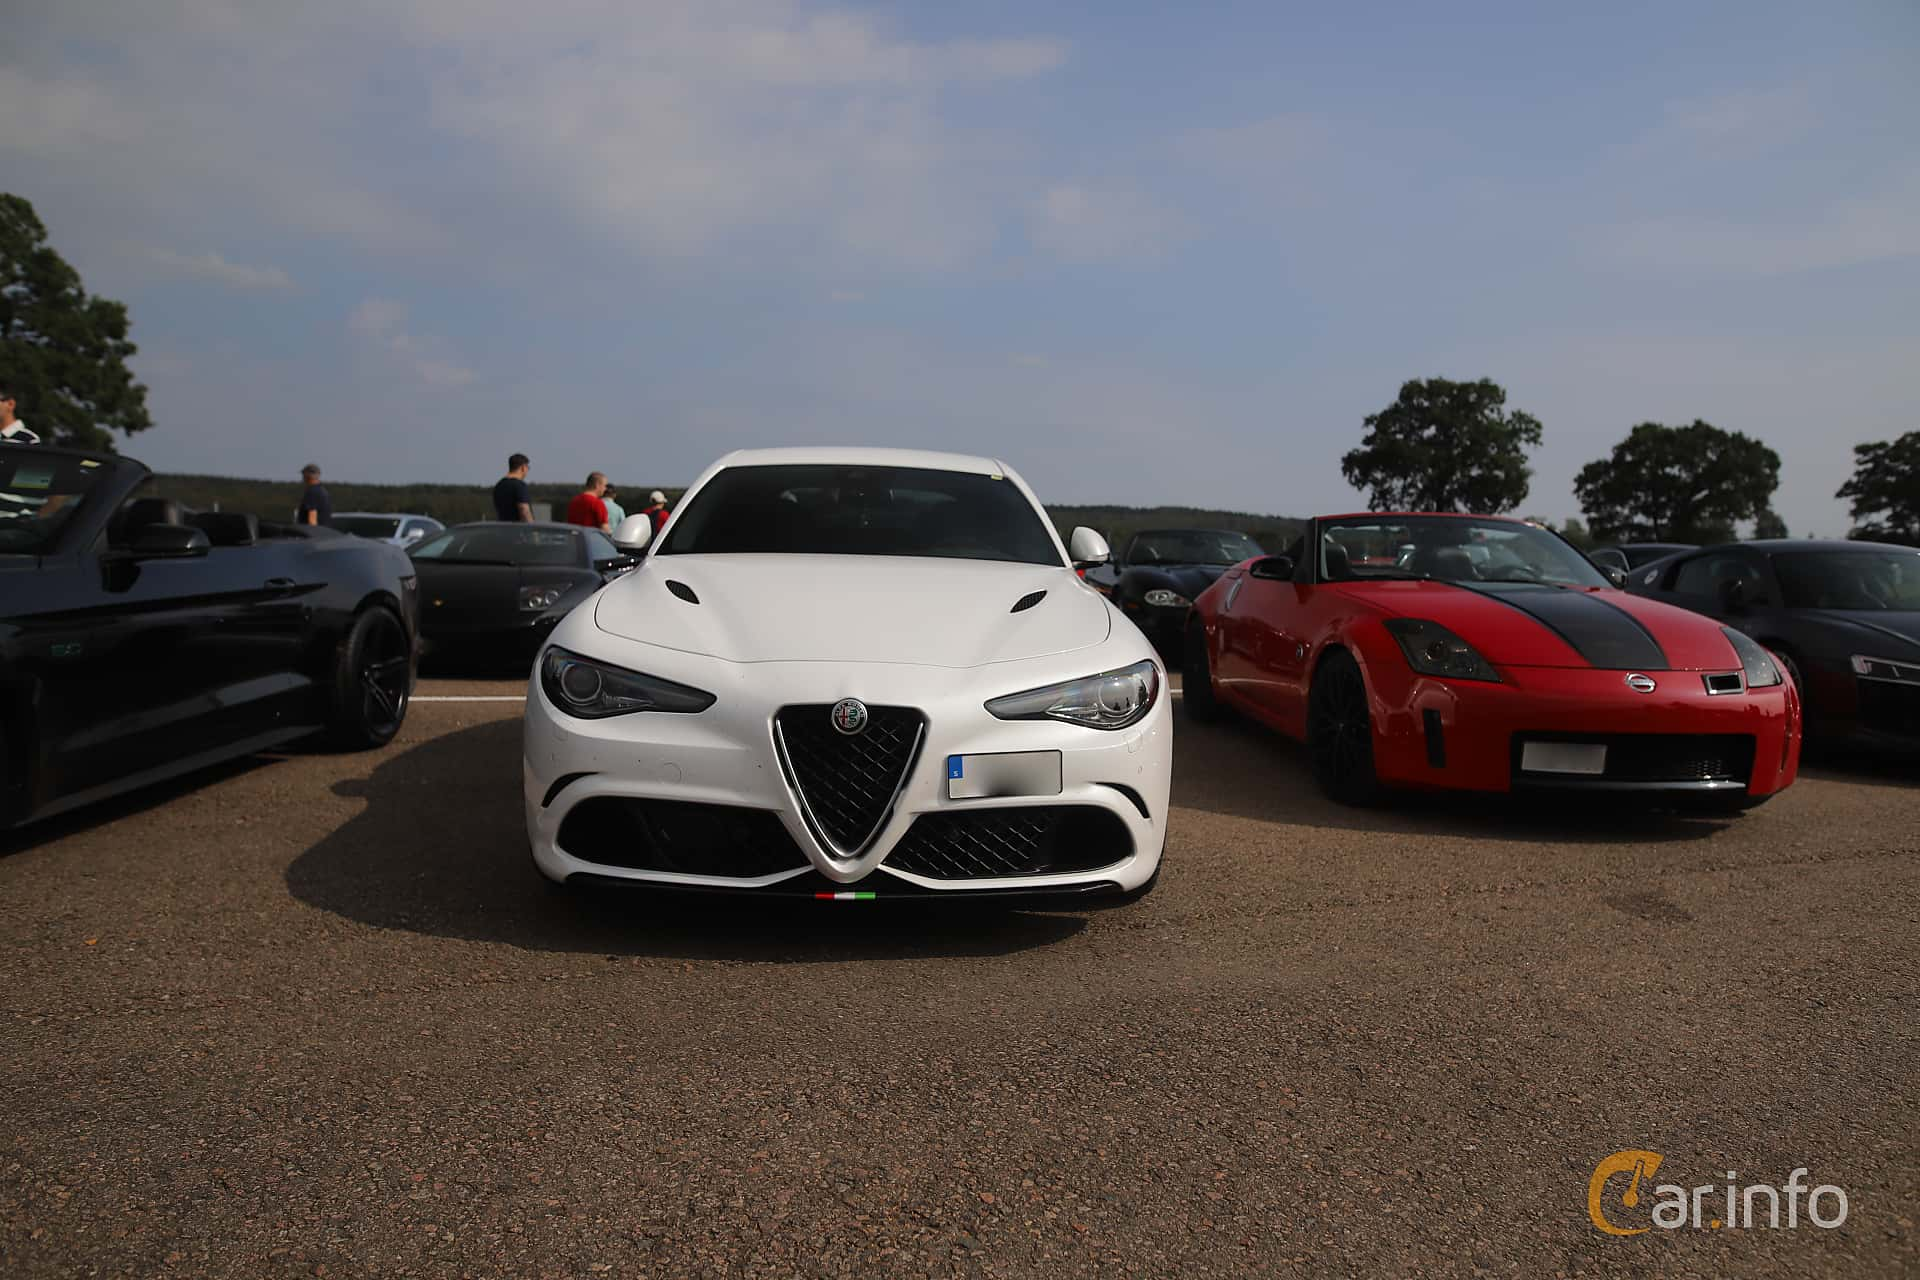 Alfa Romeo Giulia Quadrifoglio 2.9 V6 QV Automatic, 510hp, 2018 at Autoropa Racing day Knutstorp 2019